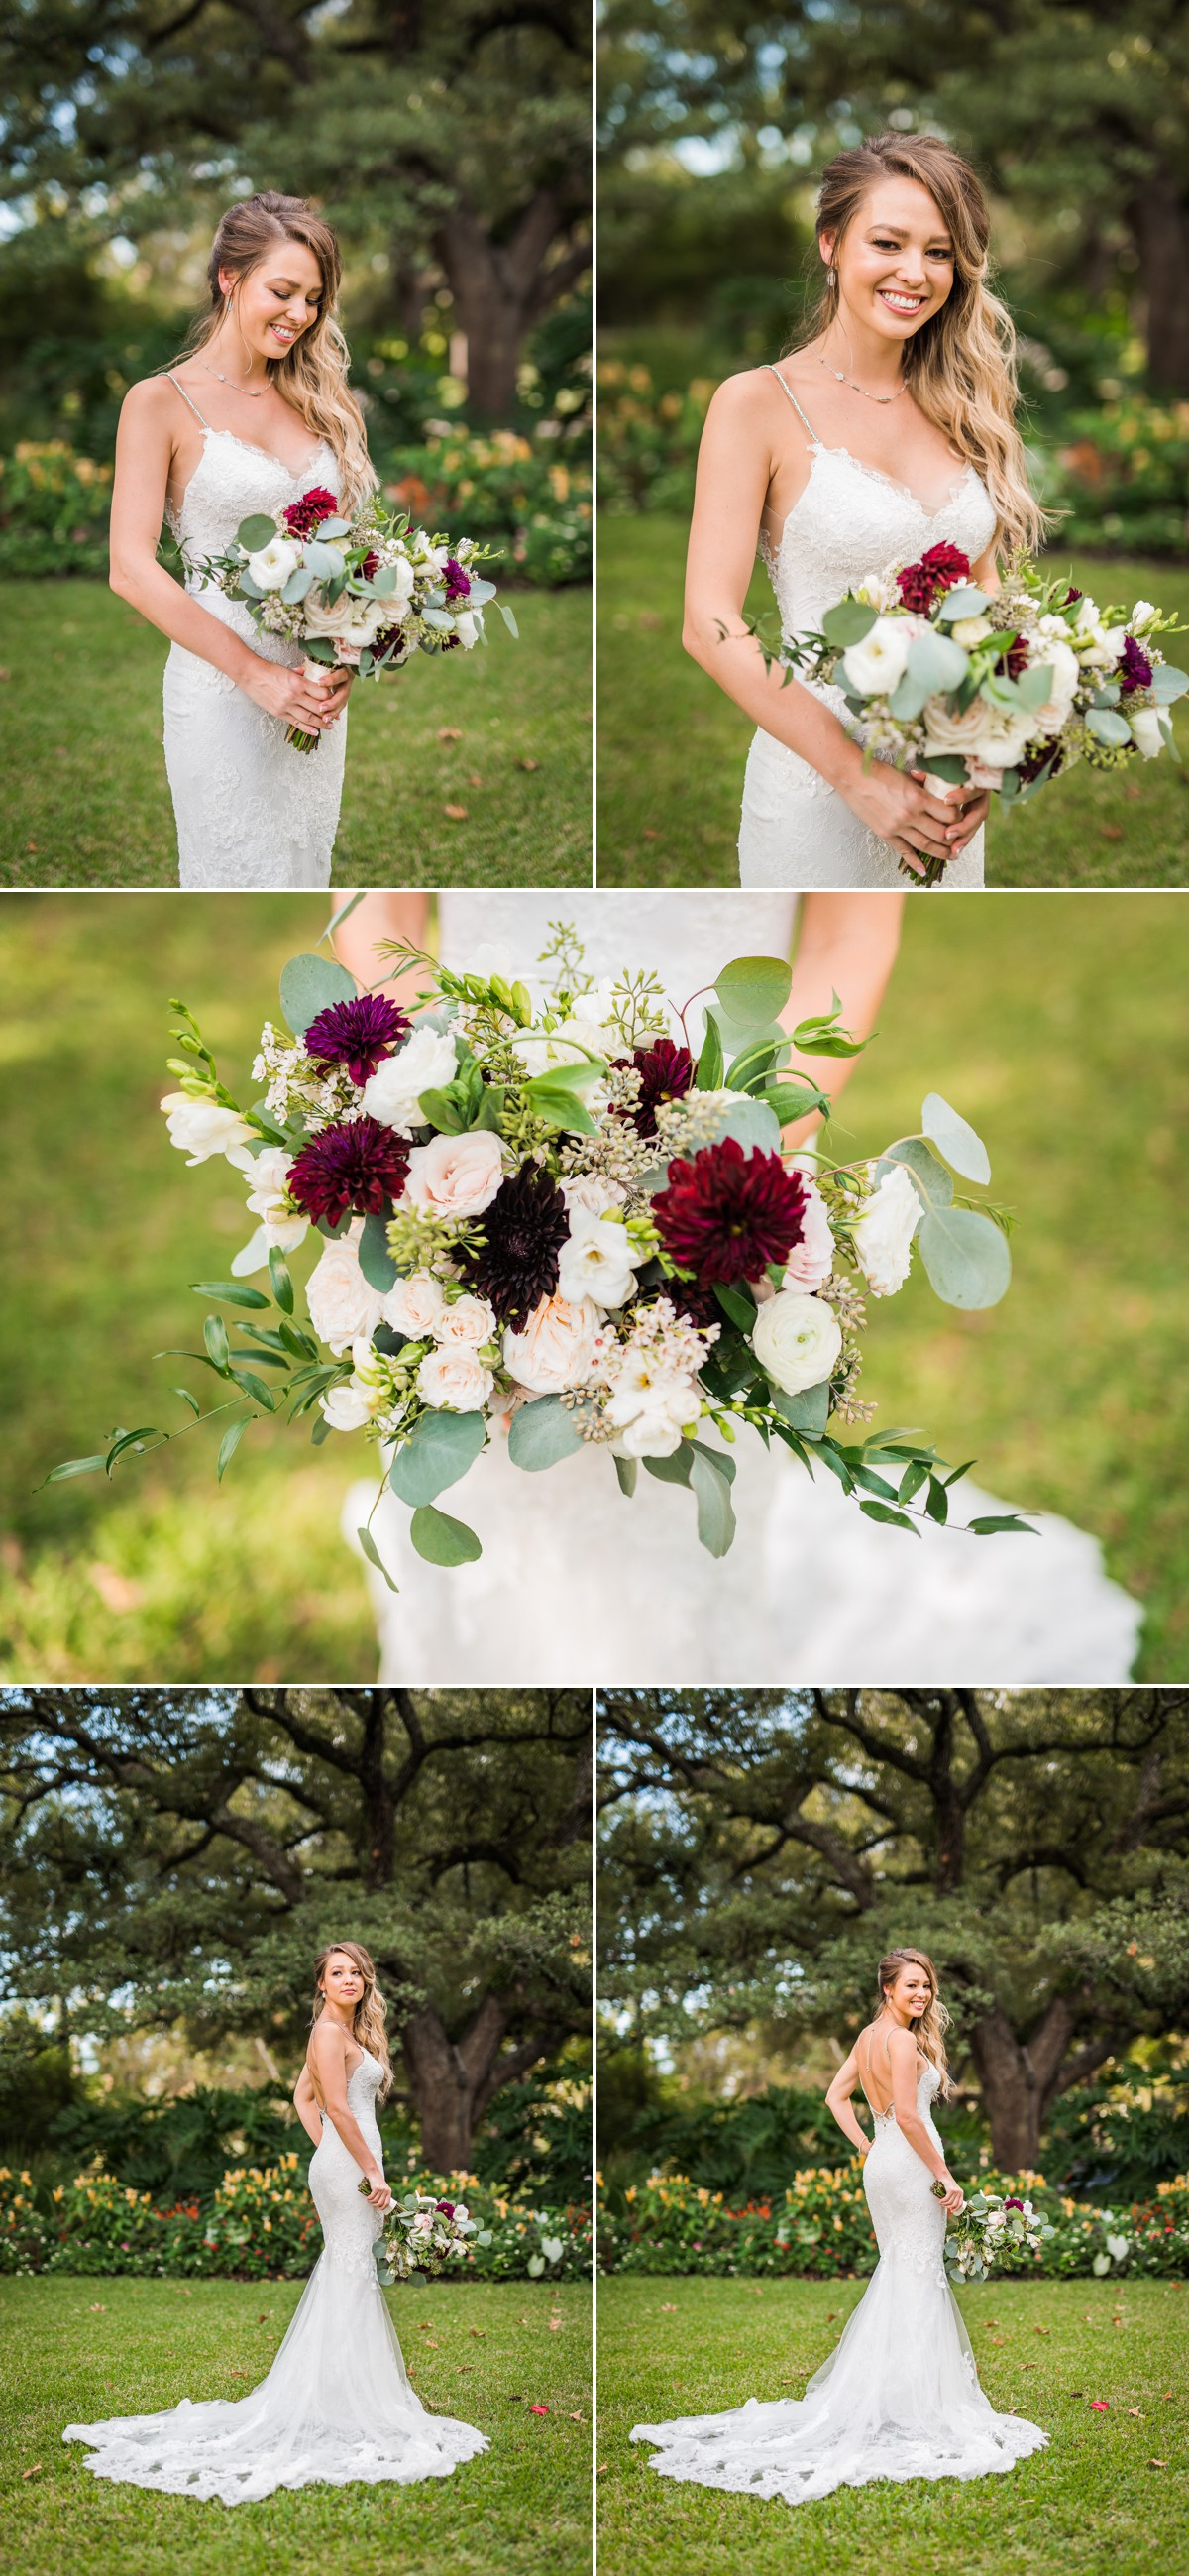 Manor House Wedding at The Houstonian Hotel Bridal Portraits Flowers